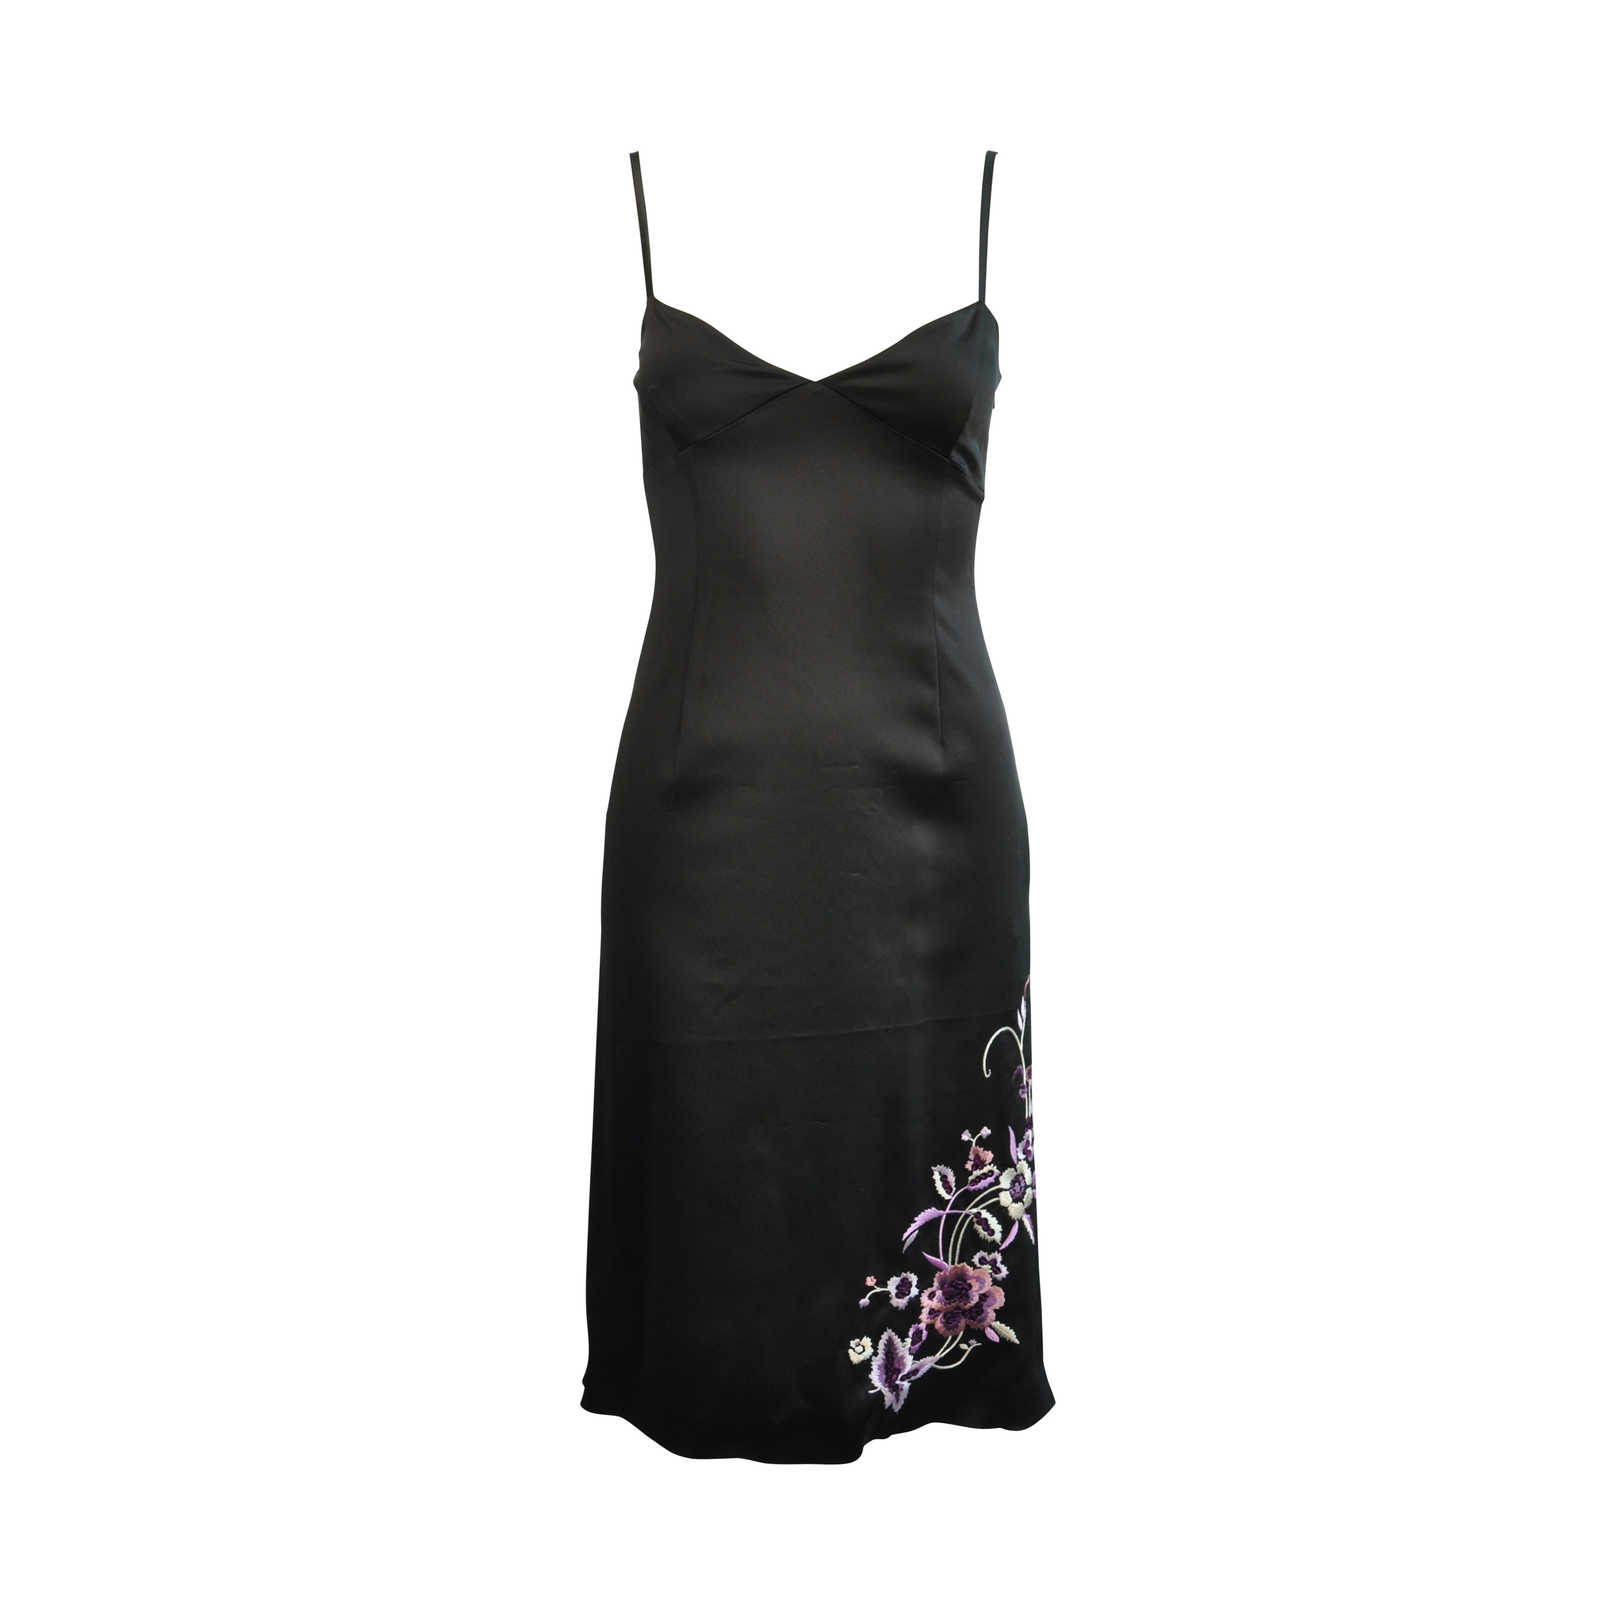 max-co-embroidered-dress-1.jpg